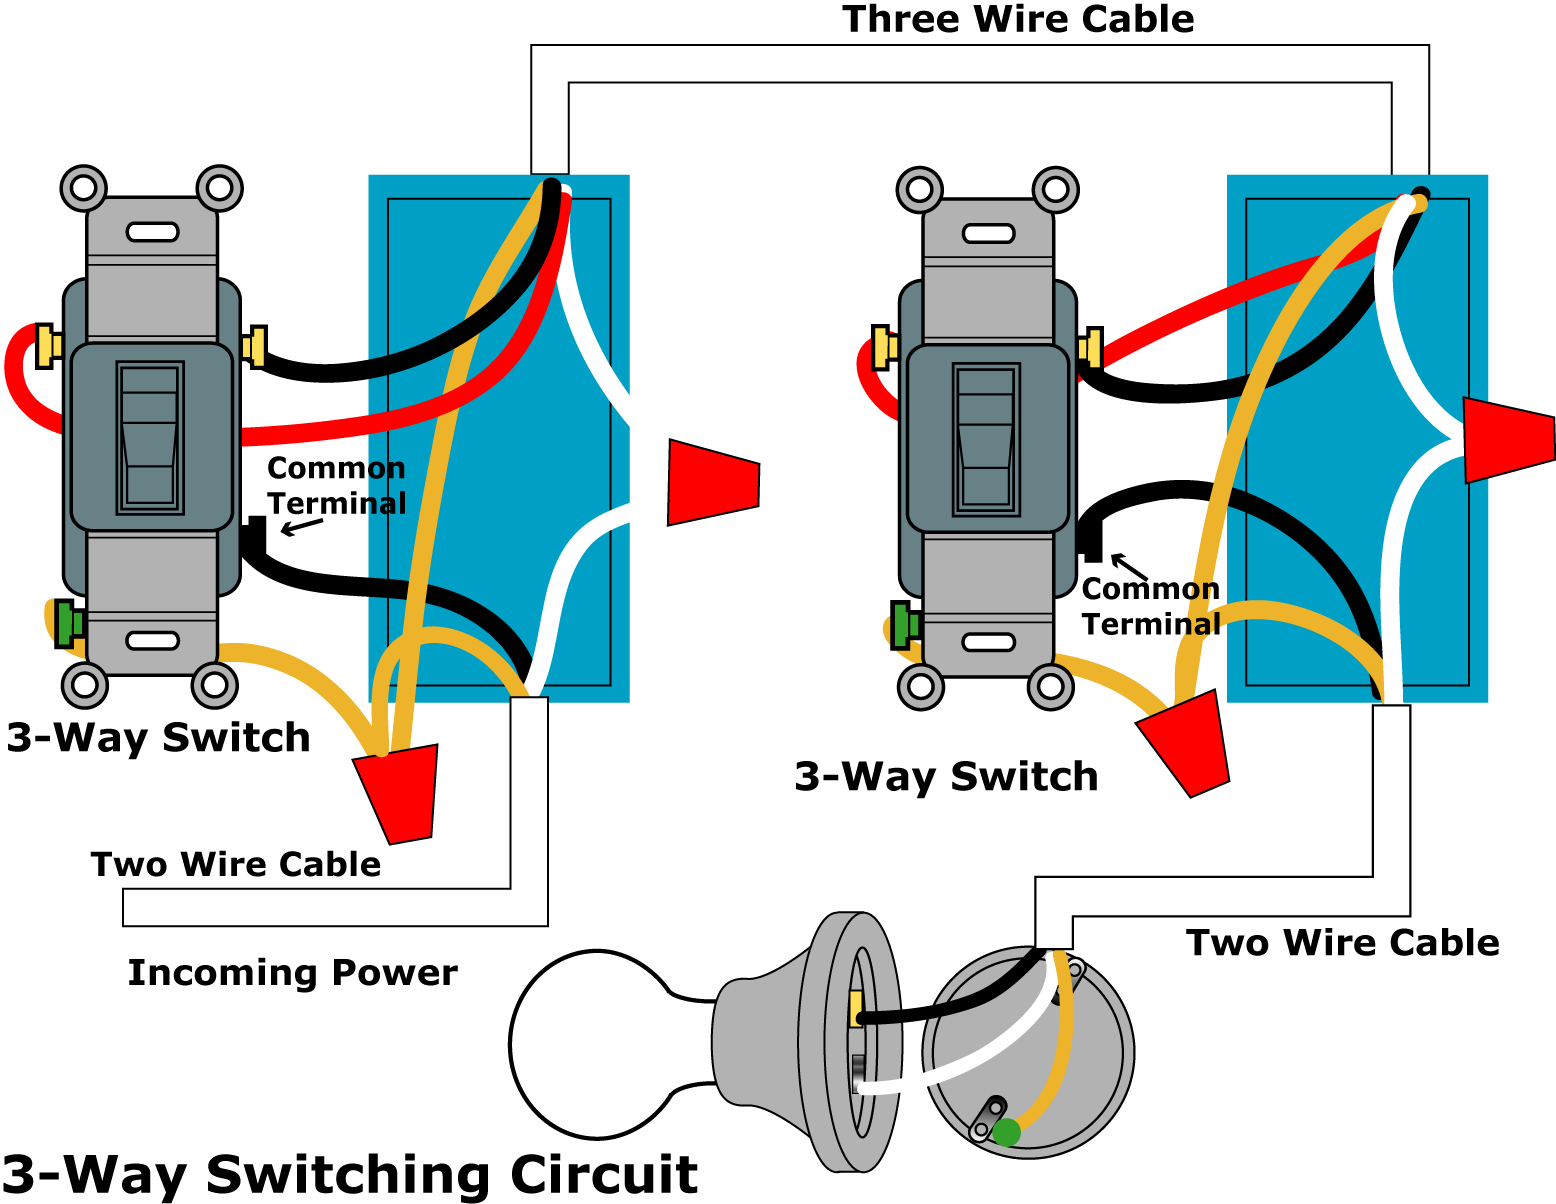 Three Pole Toggle Switch Wiring Diagram Auto Electrical Clarion Vrx775vd Brake Bypass Ecousticscom Single Dpdt On